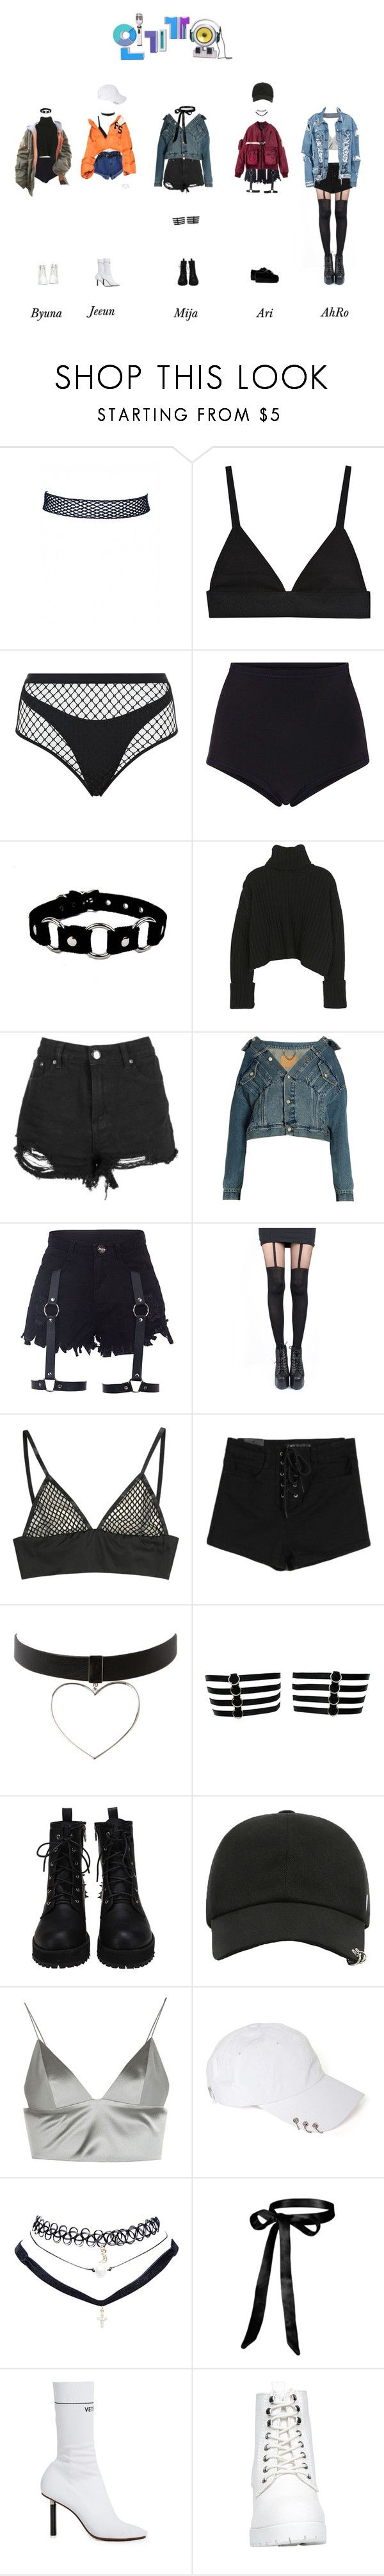 """""""elc - loser : DEBUT STAGE"""" by officialelc ❤ liked on Polyvore featuring Agent Provocateur, Cynthia Rowley, Boohoo, Balenciaga, Pretty Polly, T By Alexander Wang, Wet Seal and Vetements"""